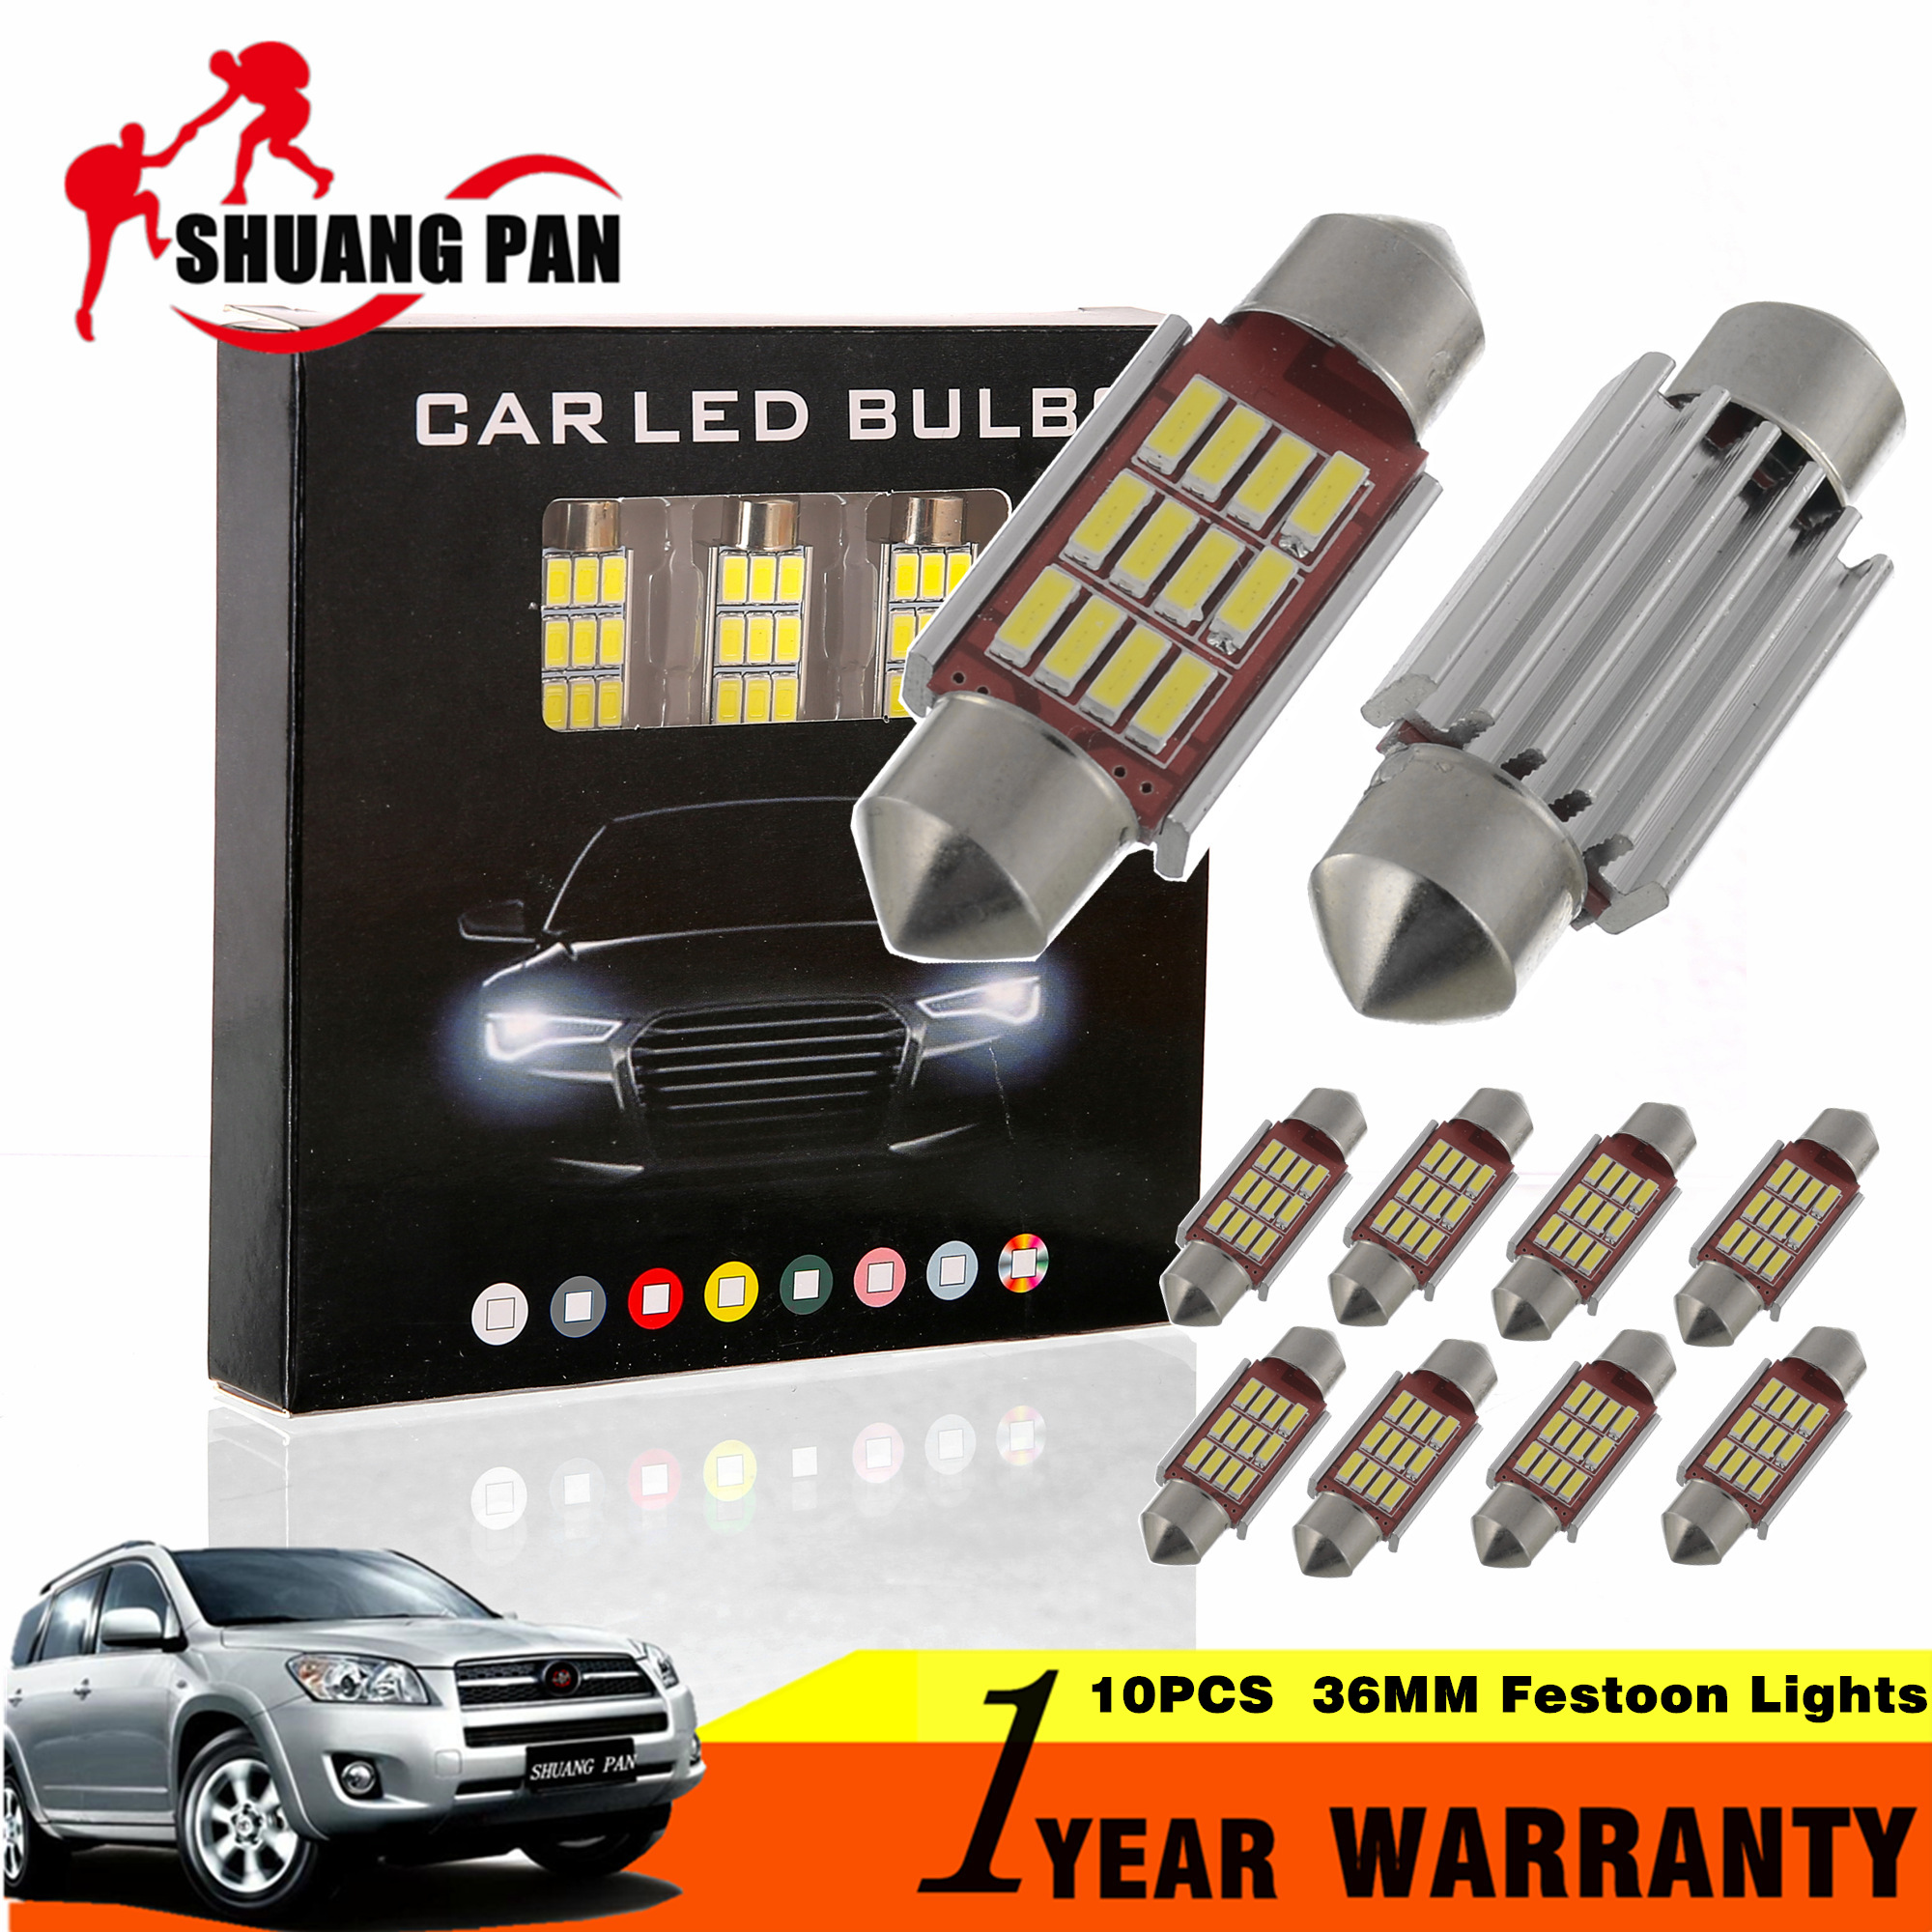 10pcs Car led Festoon Lights 31mm 36mm 39mm 41mm Dome Light 12SMD 4014 CANBUS Car Interior Bulbs c5w License Plate Lights 12v cawanerl car canbus led package kit 2835 smd white interior dome map cargo license plate light for audi tt tts 8j 2007 2012